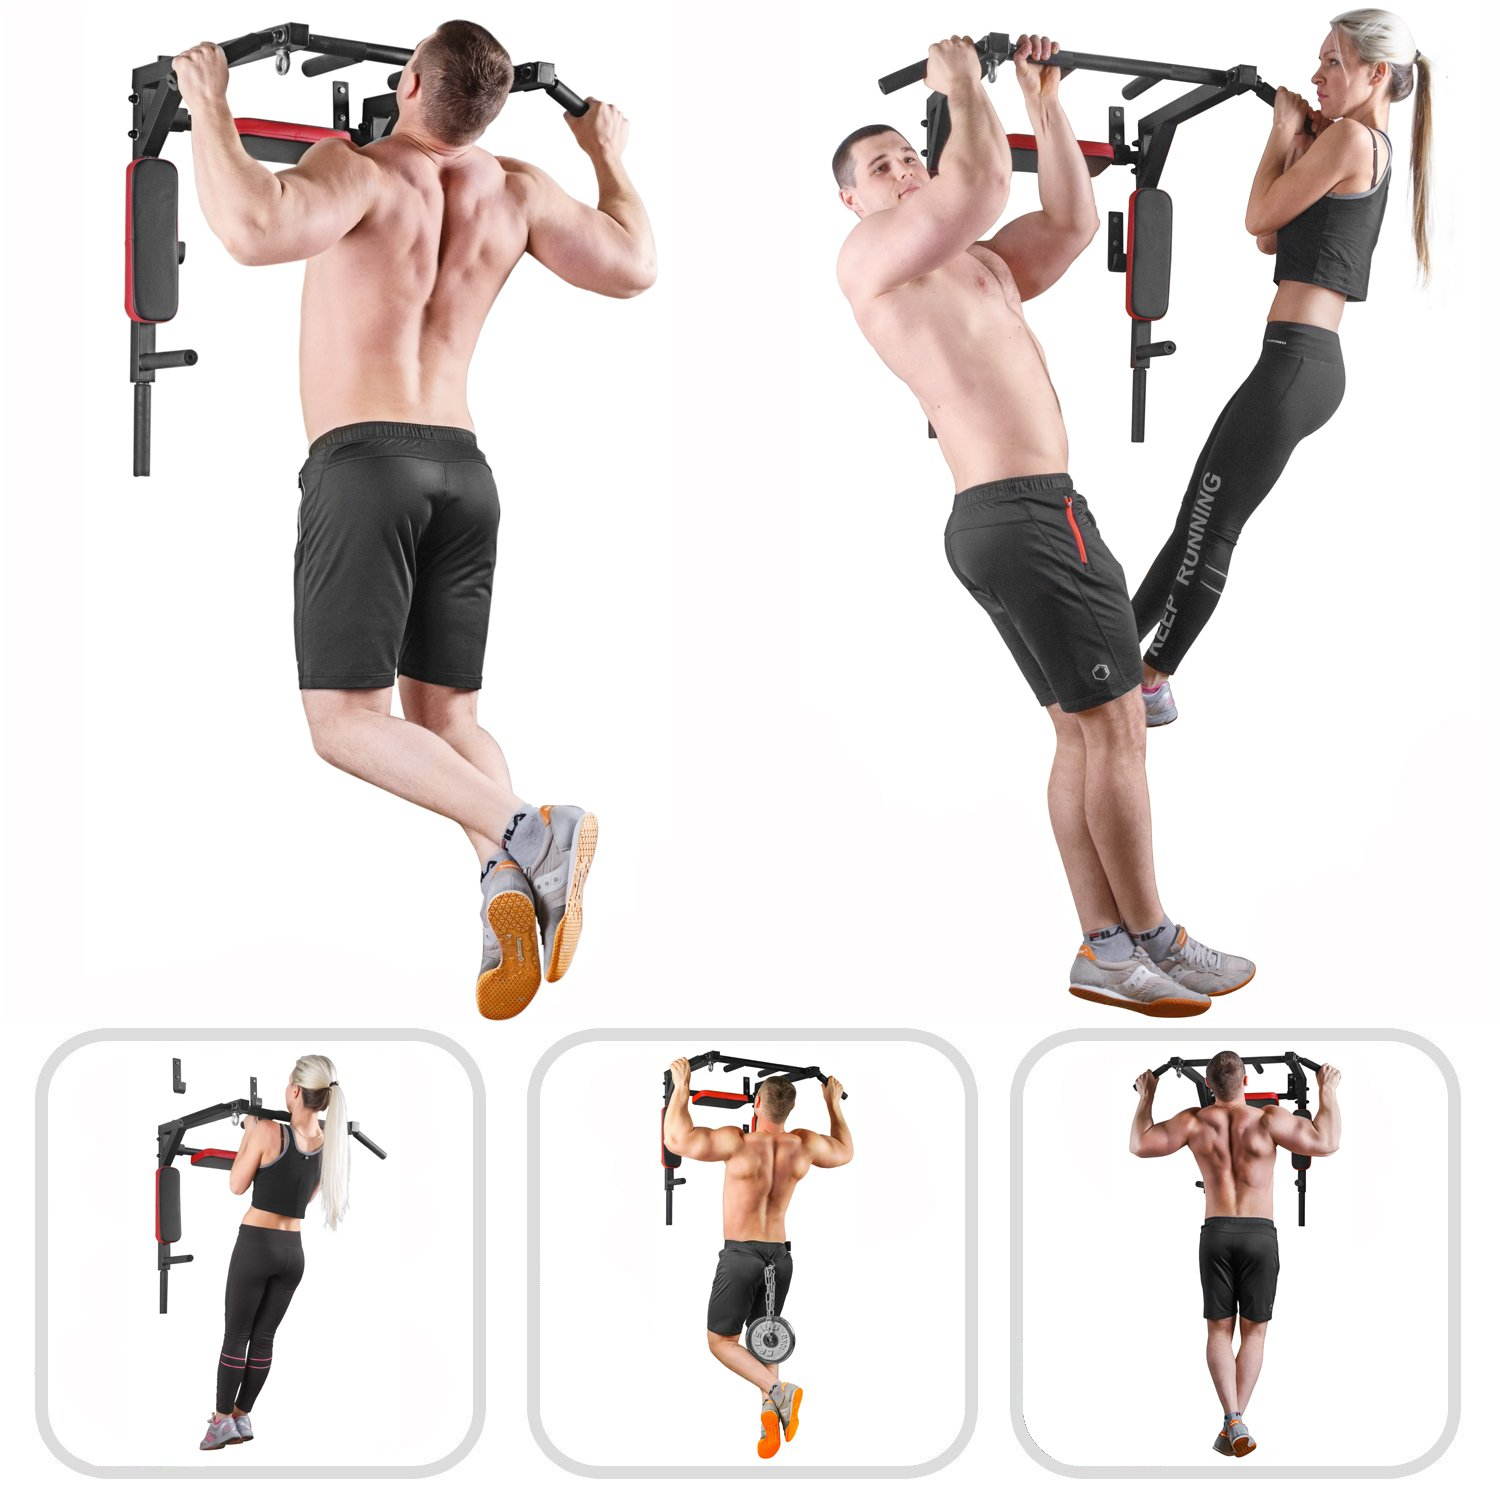 Wall Mounted Pull Up Bar - Pullup Bar Wall Mount - Chin Up Bar - Pull Up Bars and Dip Bar - Pullup and Dip Bar - Dip Station Pull Bar - Pullup Bars Outdoor and Home Room or Garage Gym Multi Grip - Pul by BAR2FIT QUALITY SPORTS EQUIPMENT (Image #3)